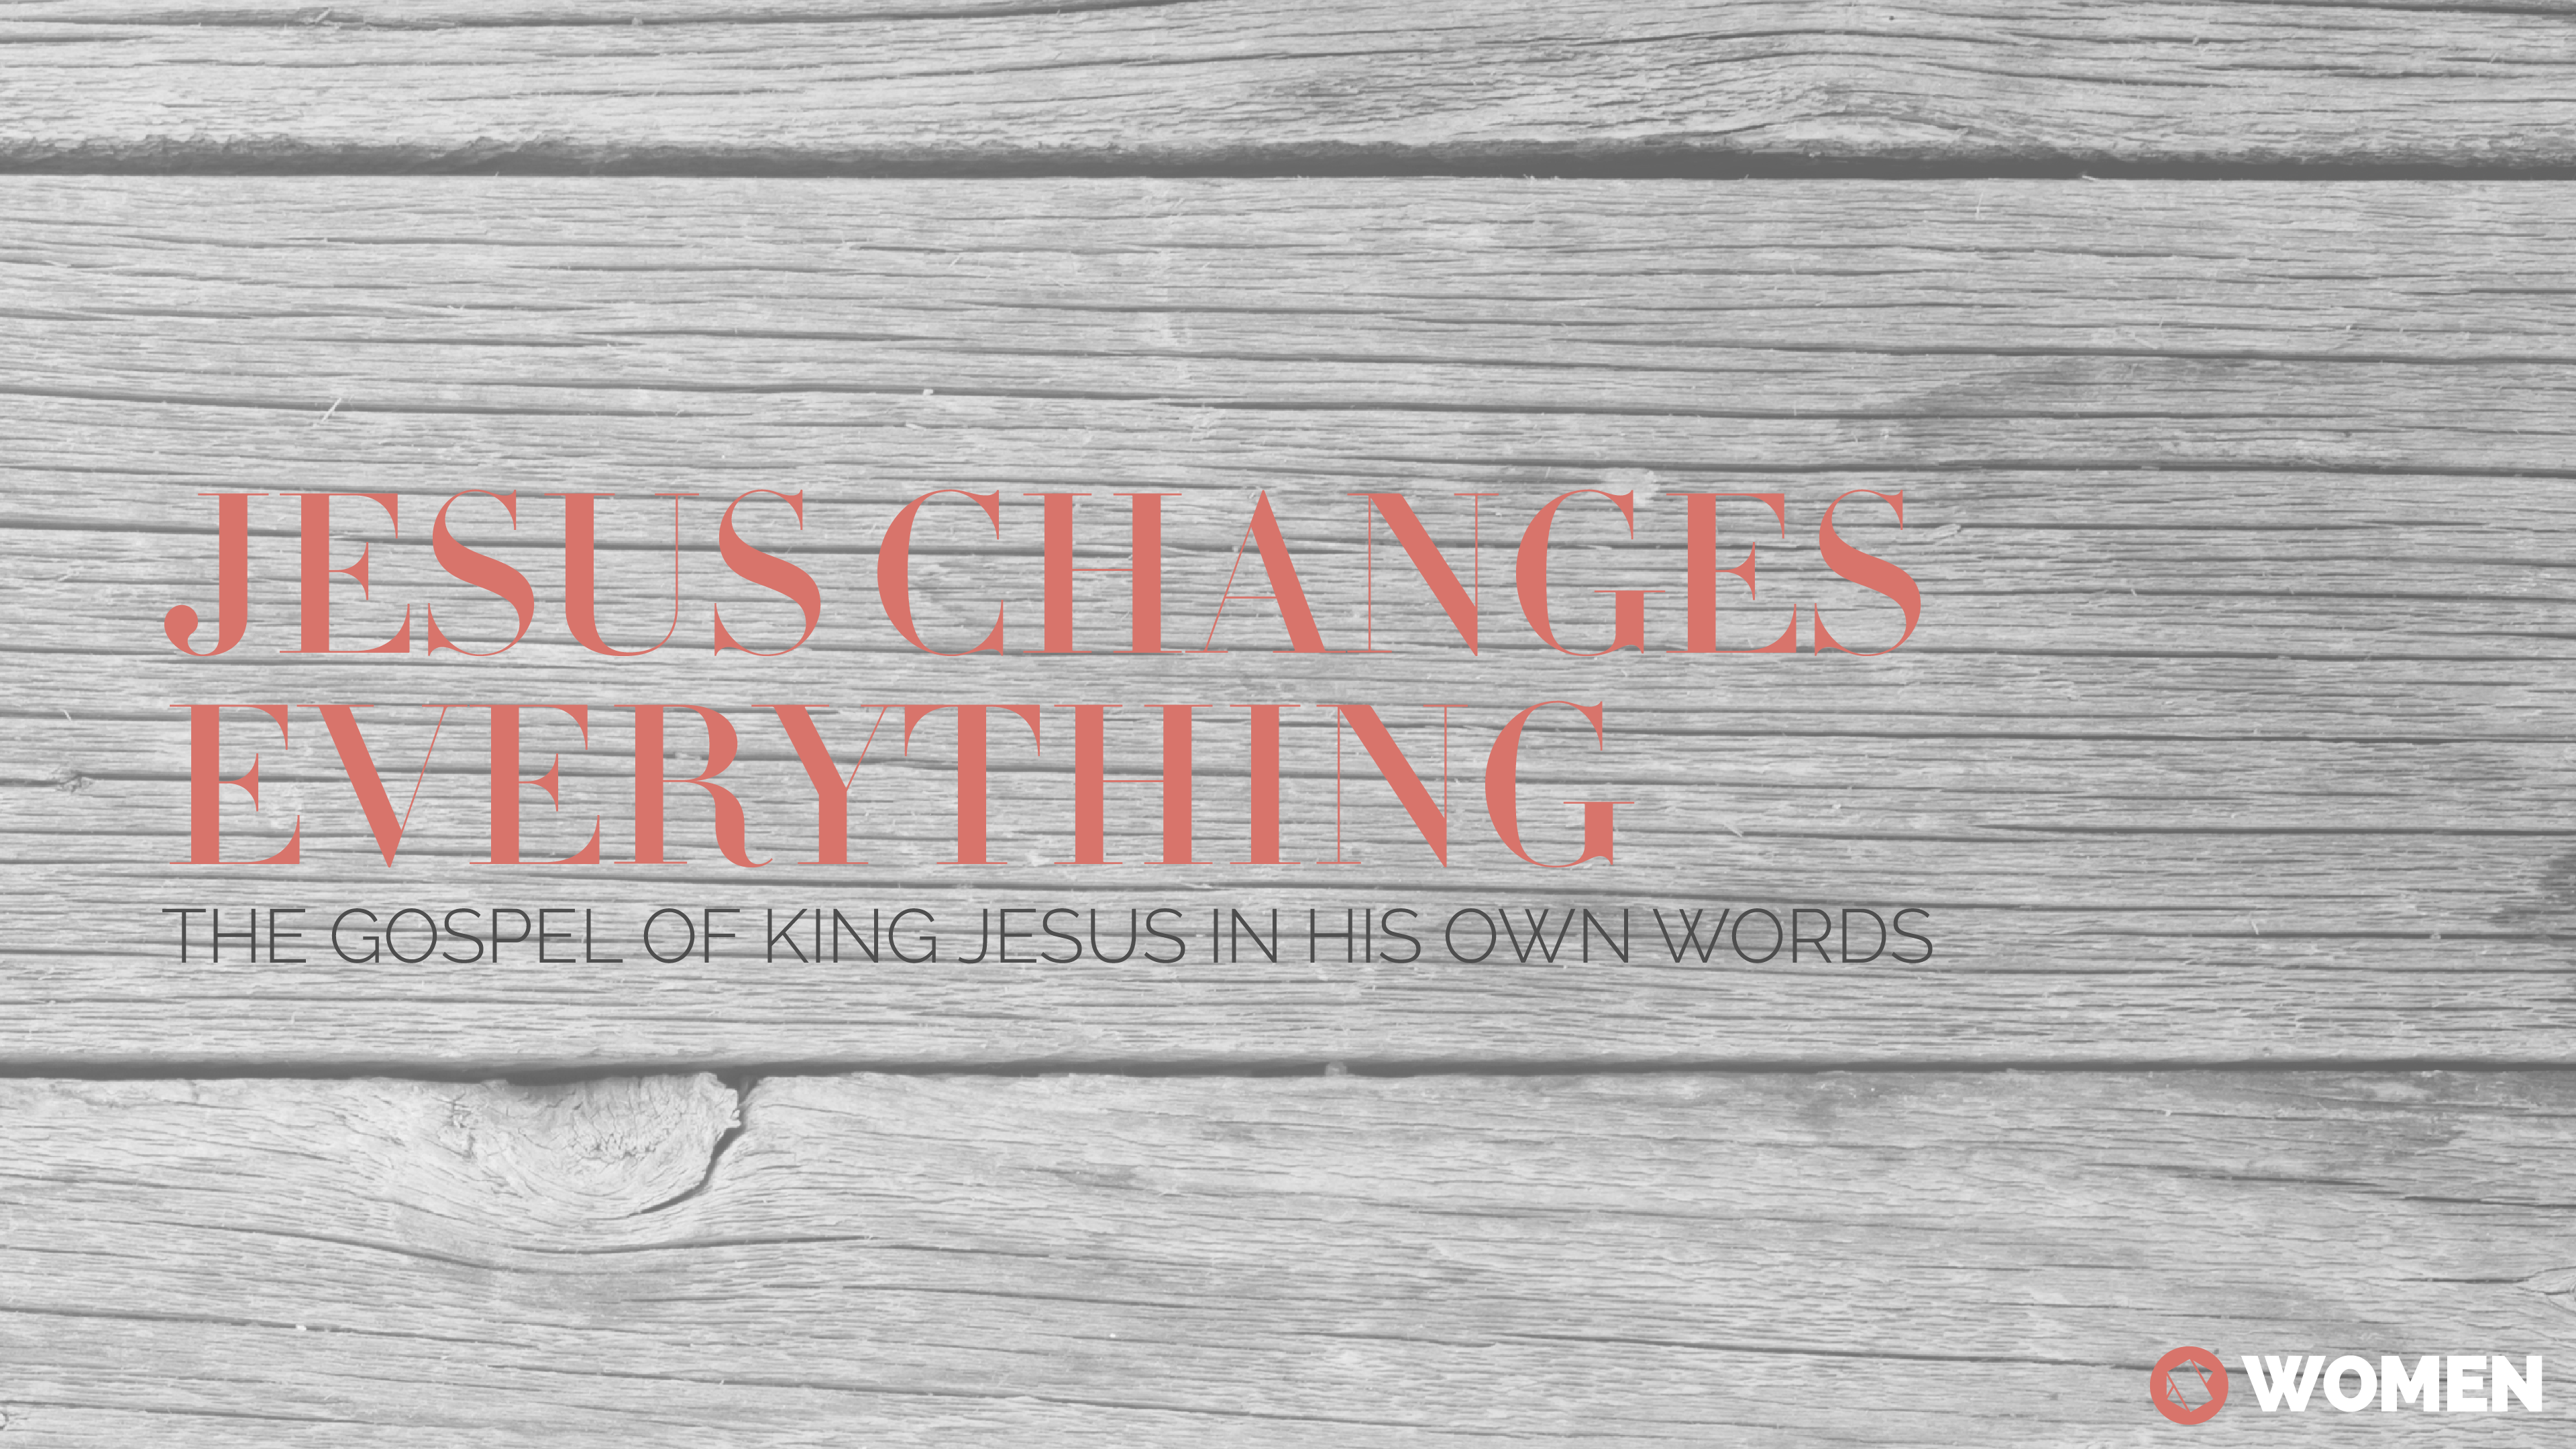 Jesus changes everything1